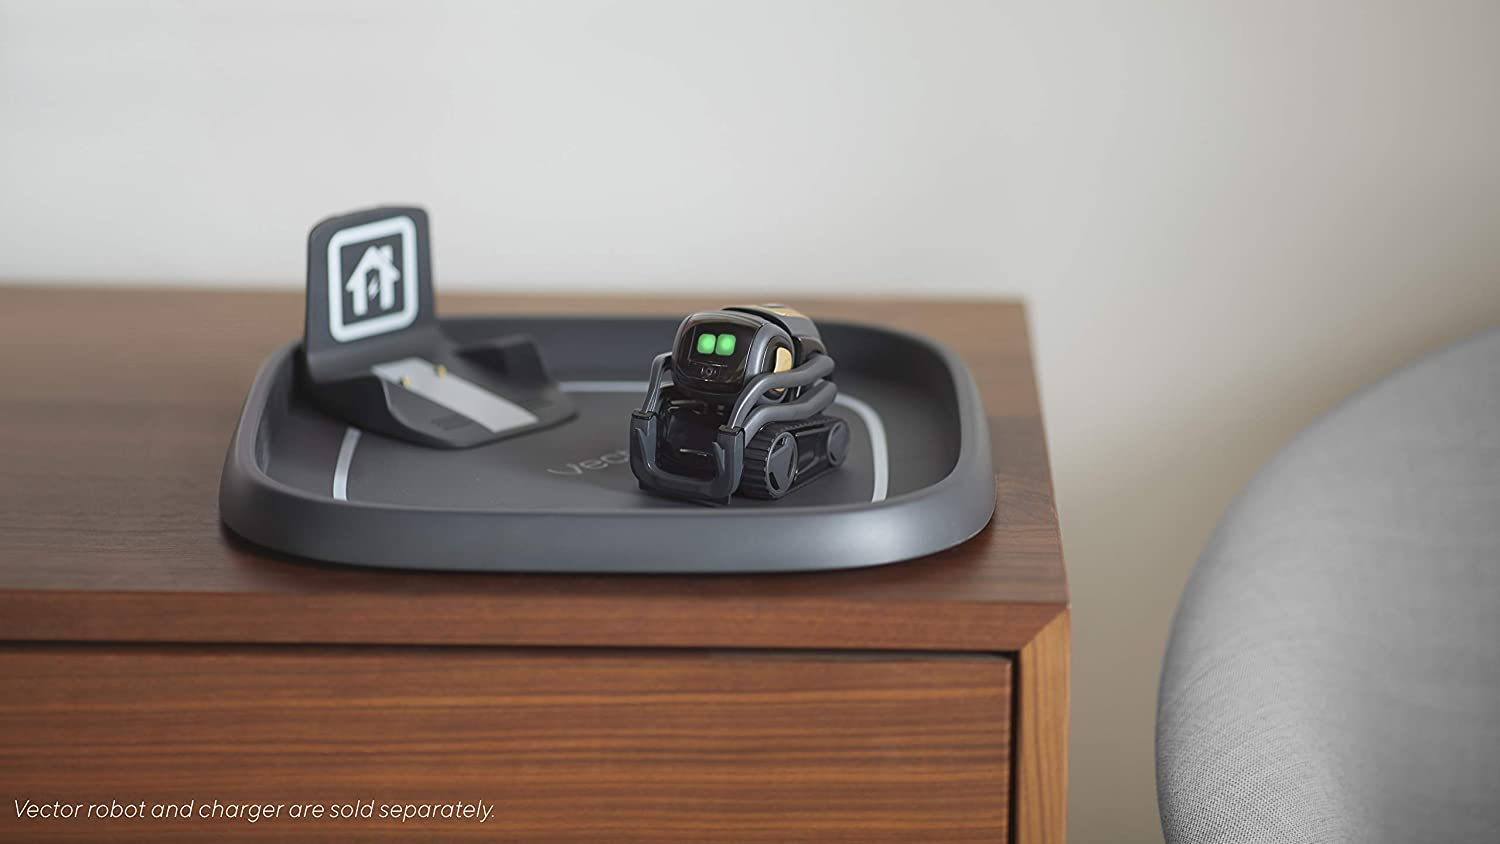 Vector Robot by Anki, A Home Robot Who Hangs Out & Helps Out, With ...